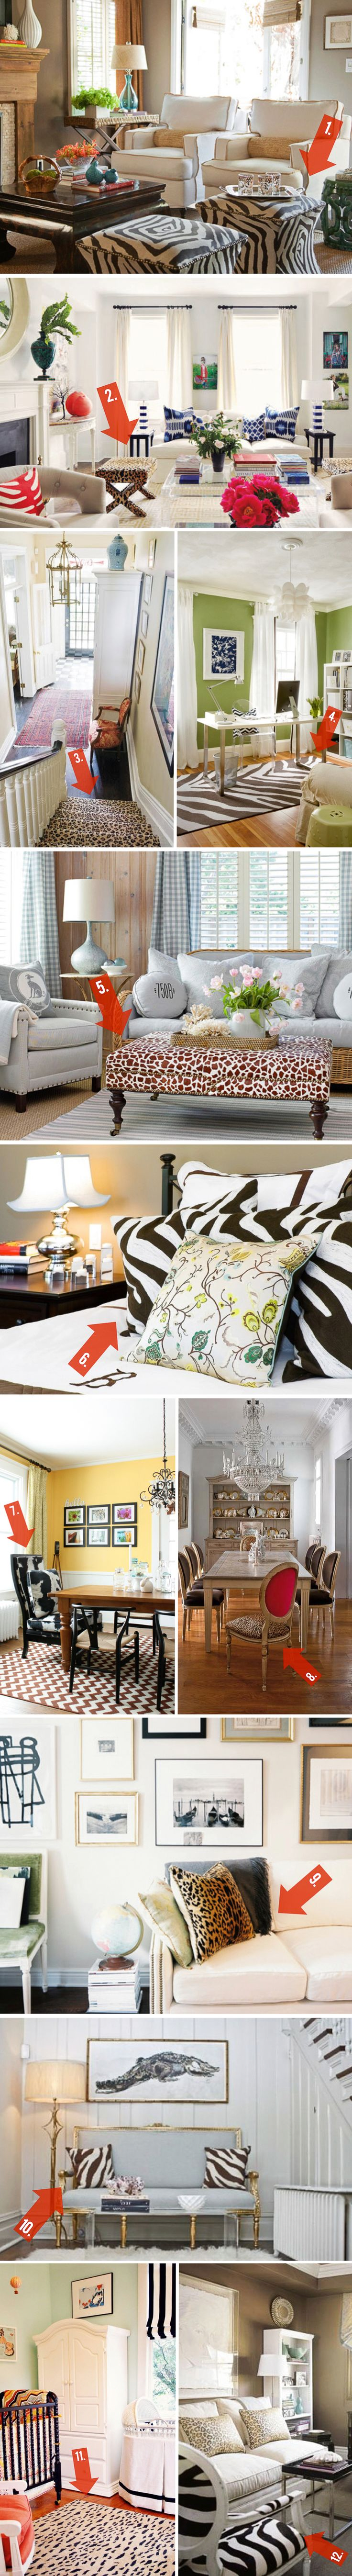 to best home print cupboard easy living ways via dark big stylish final used furniture homegoods couch into pinterest your and dc on images incorporate room nyc animal